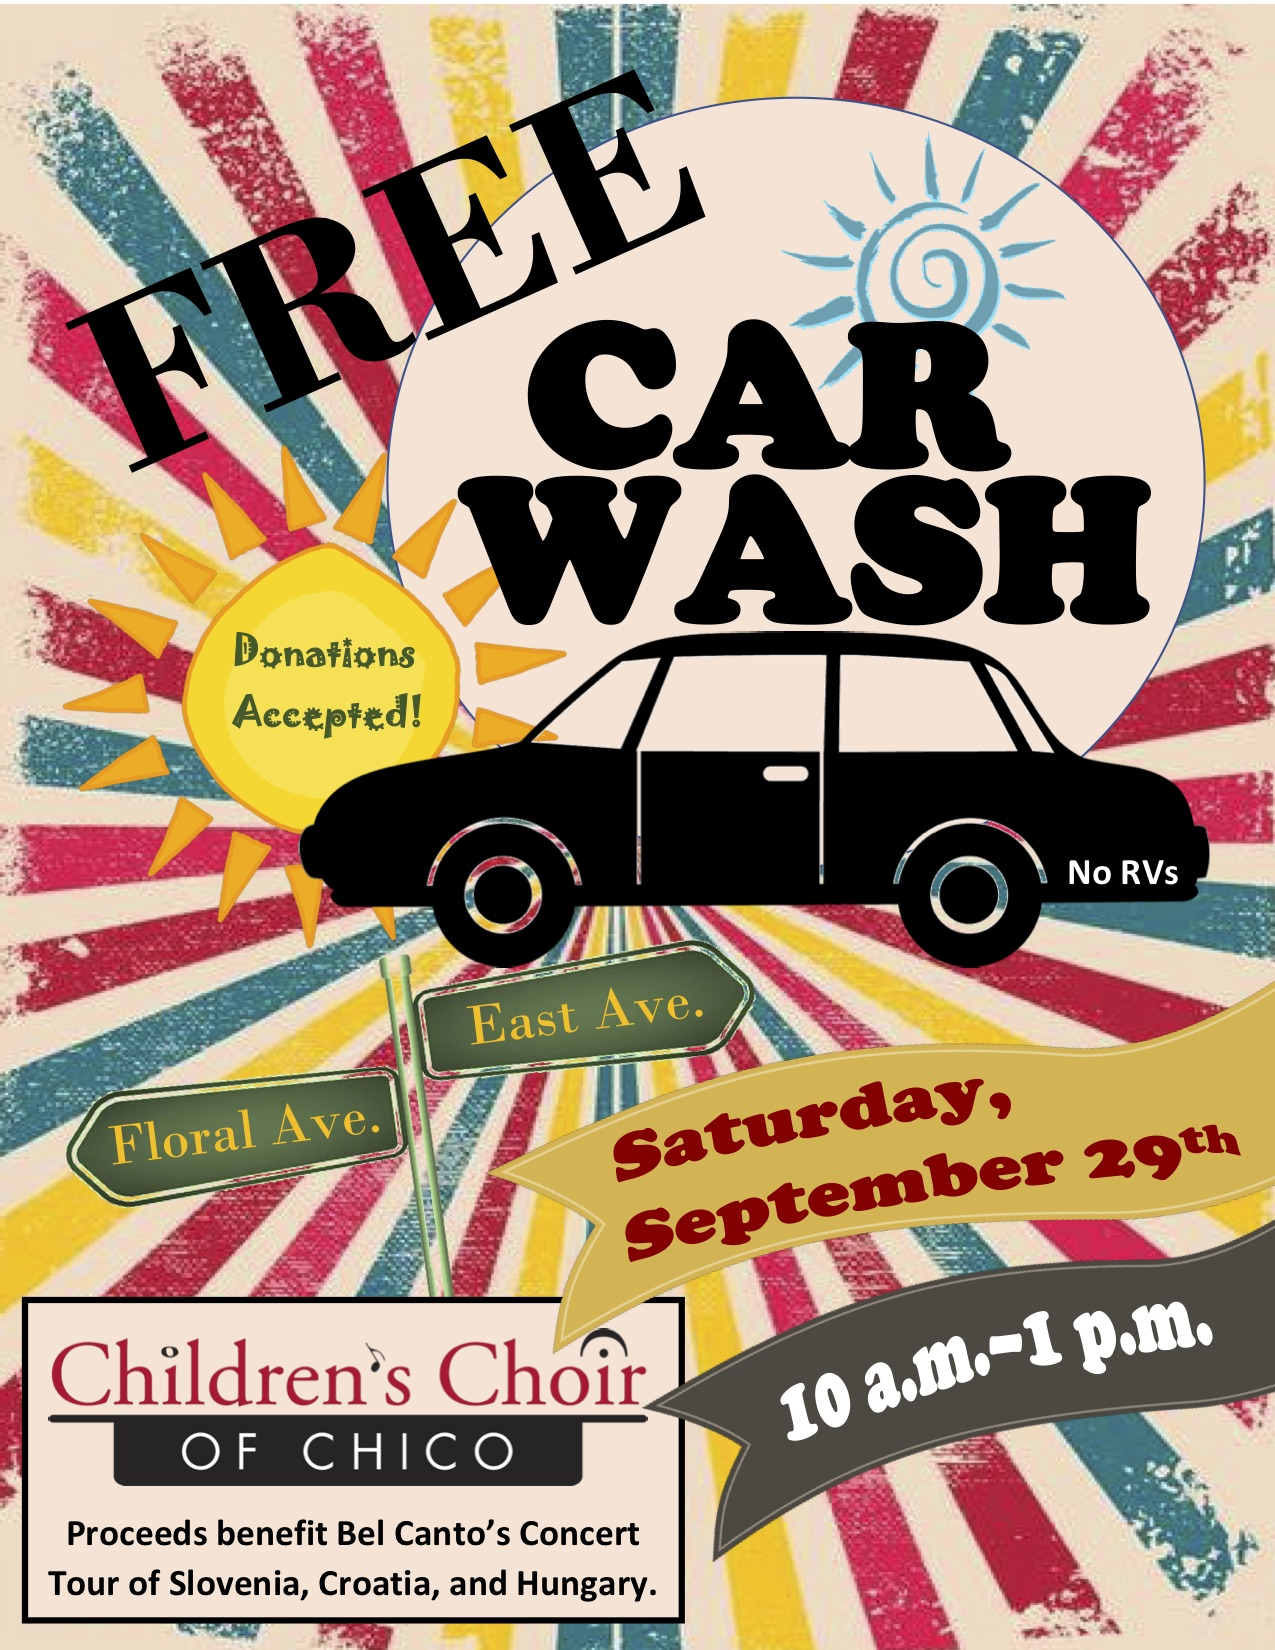 Car Wash Chico >> Car Wash Bel Canto Europe Tour Fundraiser Children S Choir Of Chico